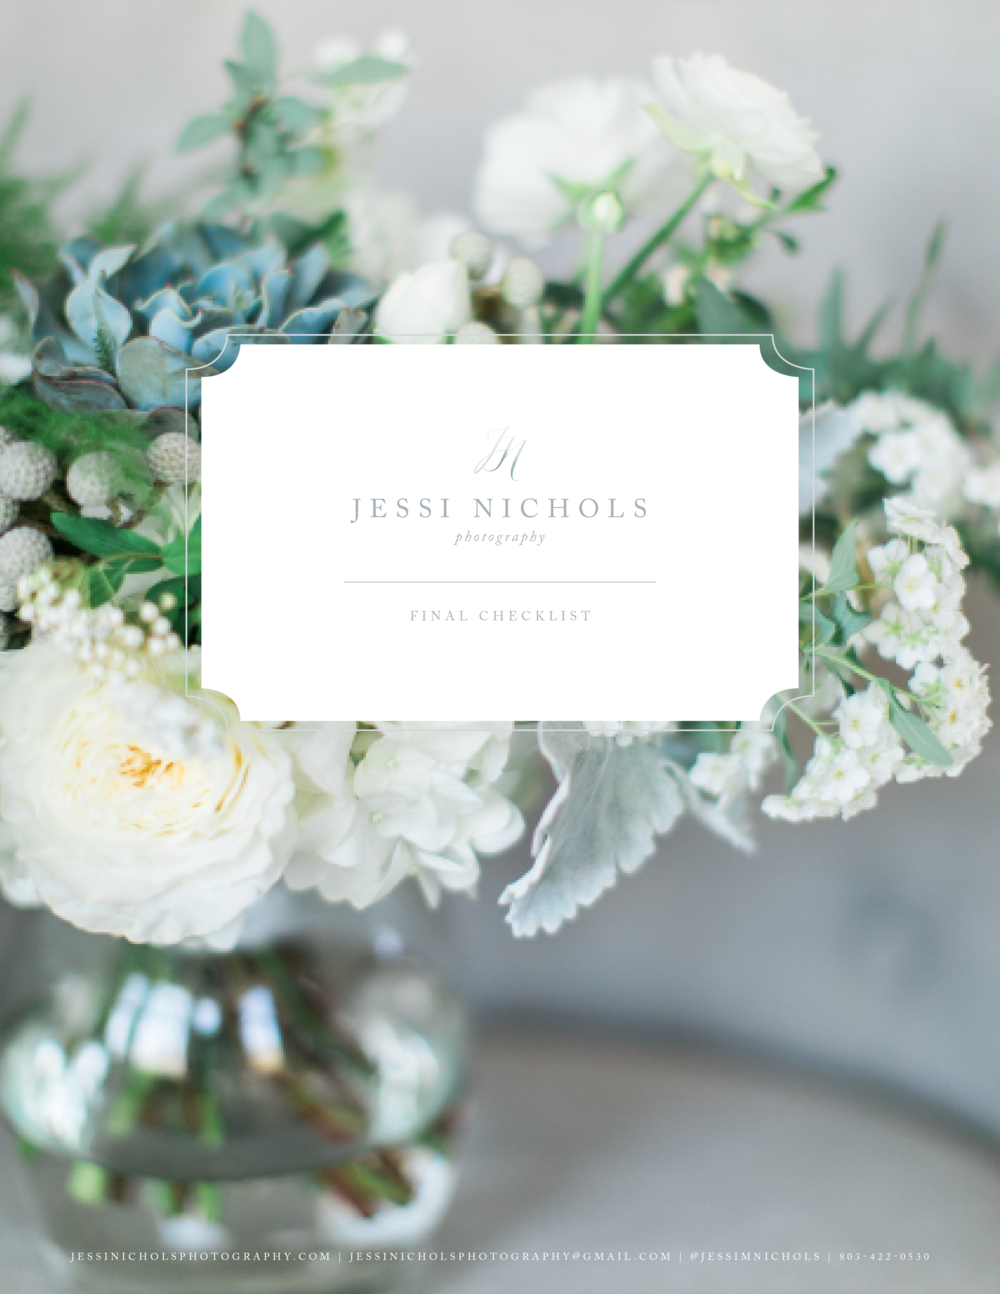 Jessi Nichols Photography Brand Design